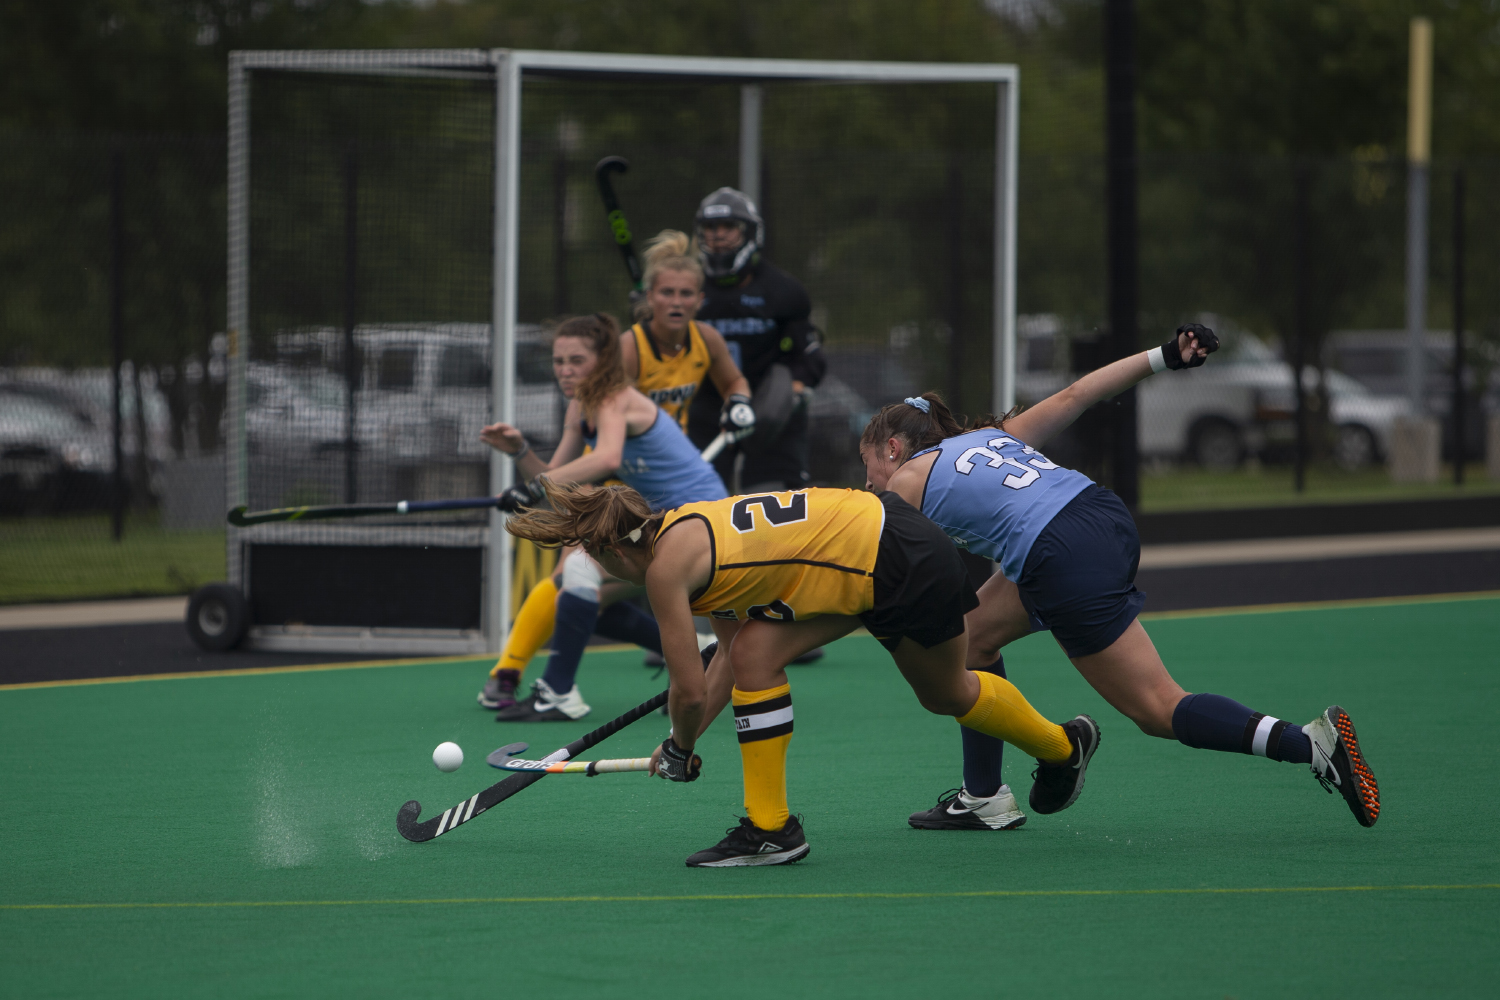 Iowa+midfielder+Sophie+Sunderland+makes+a+shot+during+a+field+hockey+game+between+Iowa+and+Columbia+at+Grant+Field+on+Sunday%2C+September+8%2C+2019.+The+Hawkeyes+defeated+the+Lions%2C+3-1.